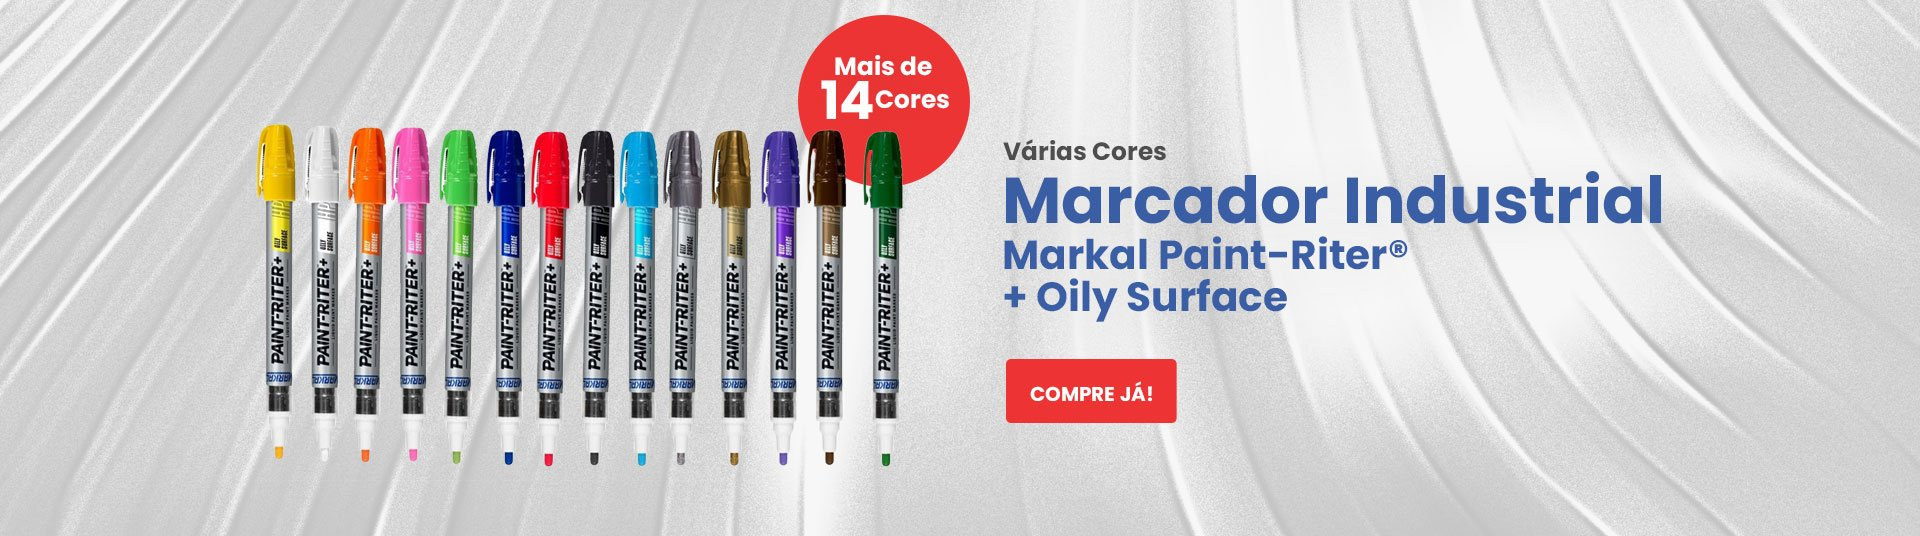 Marcador Industrial Markal Paint-Riter® + Oily Surface